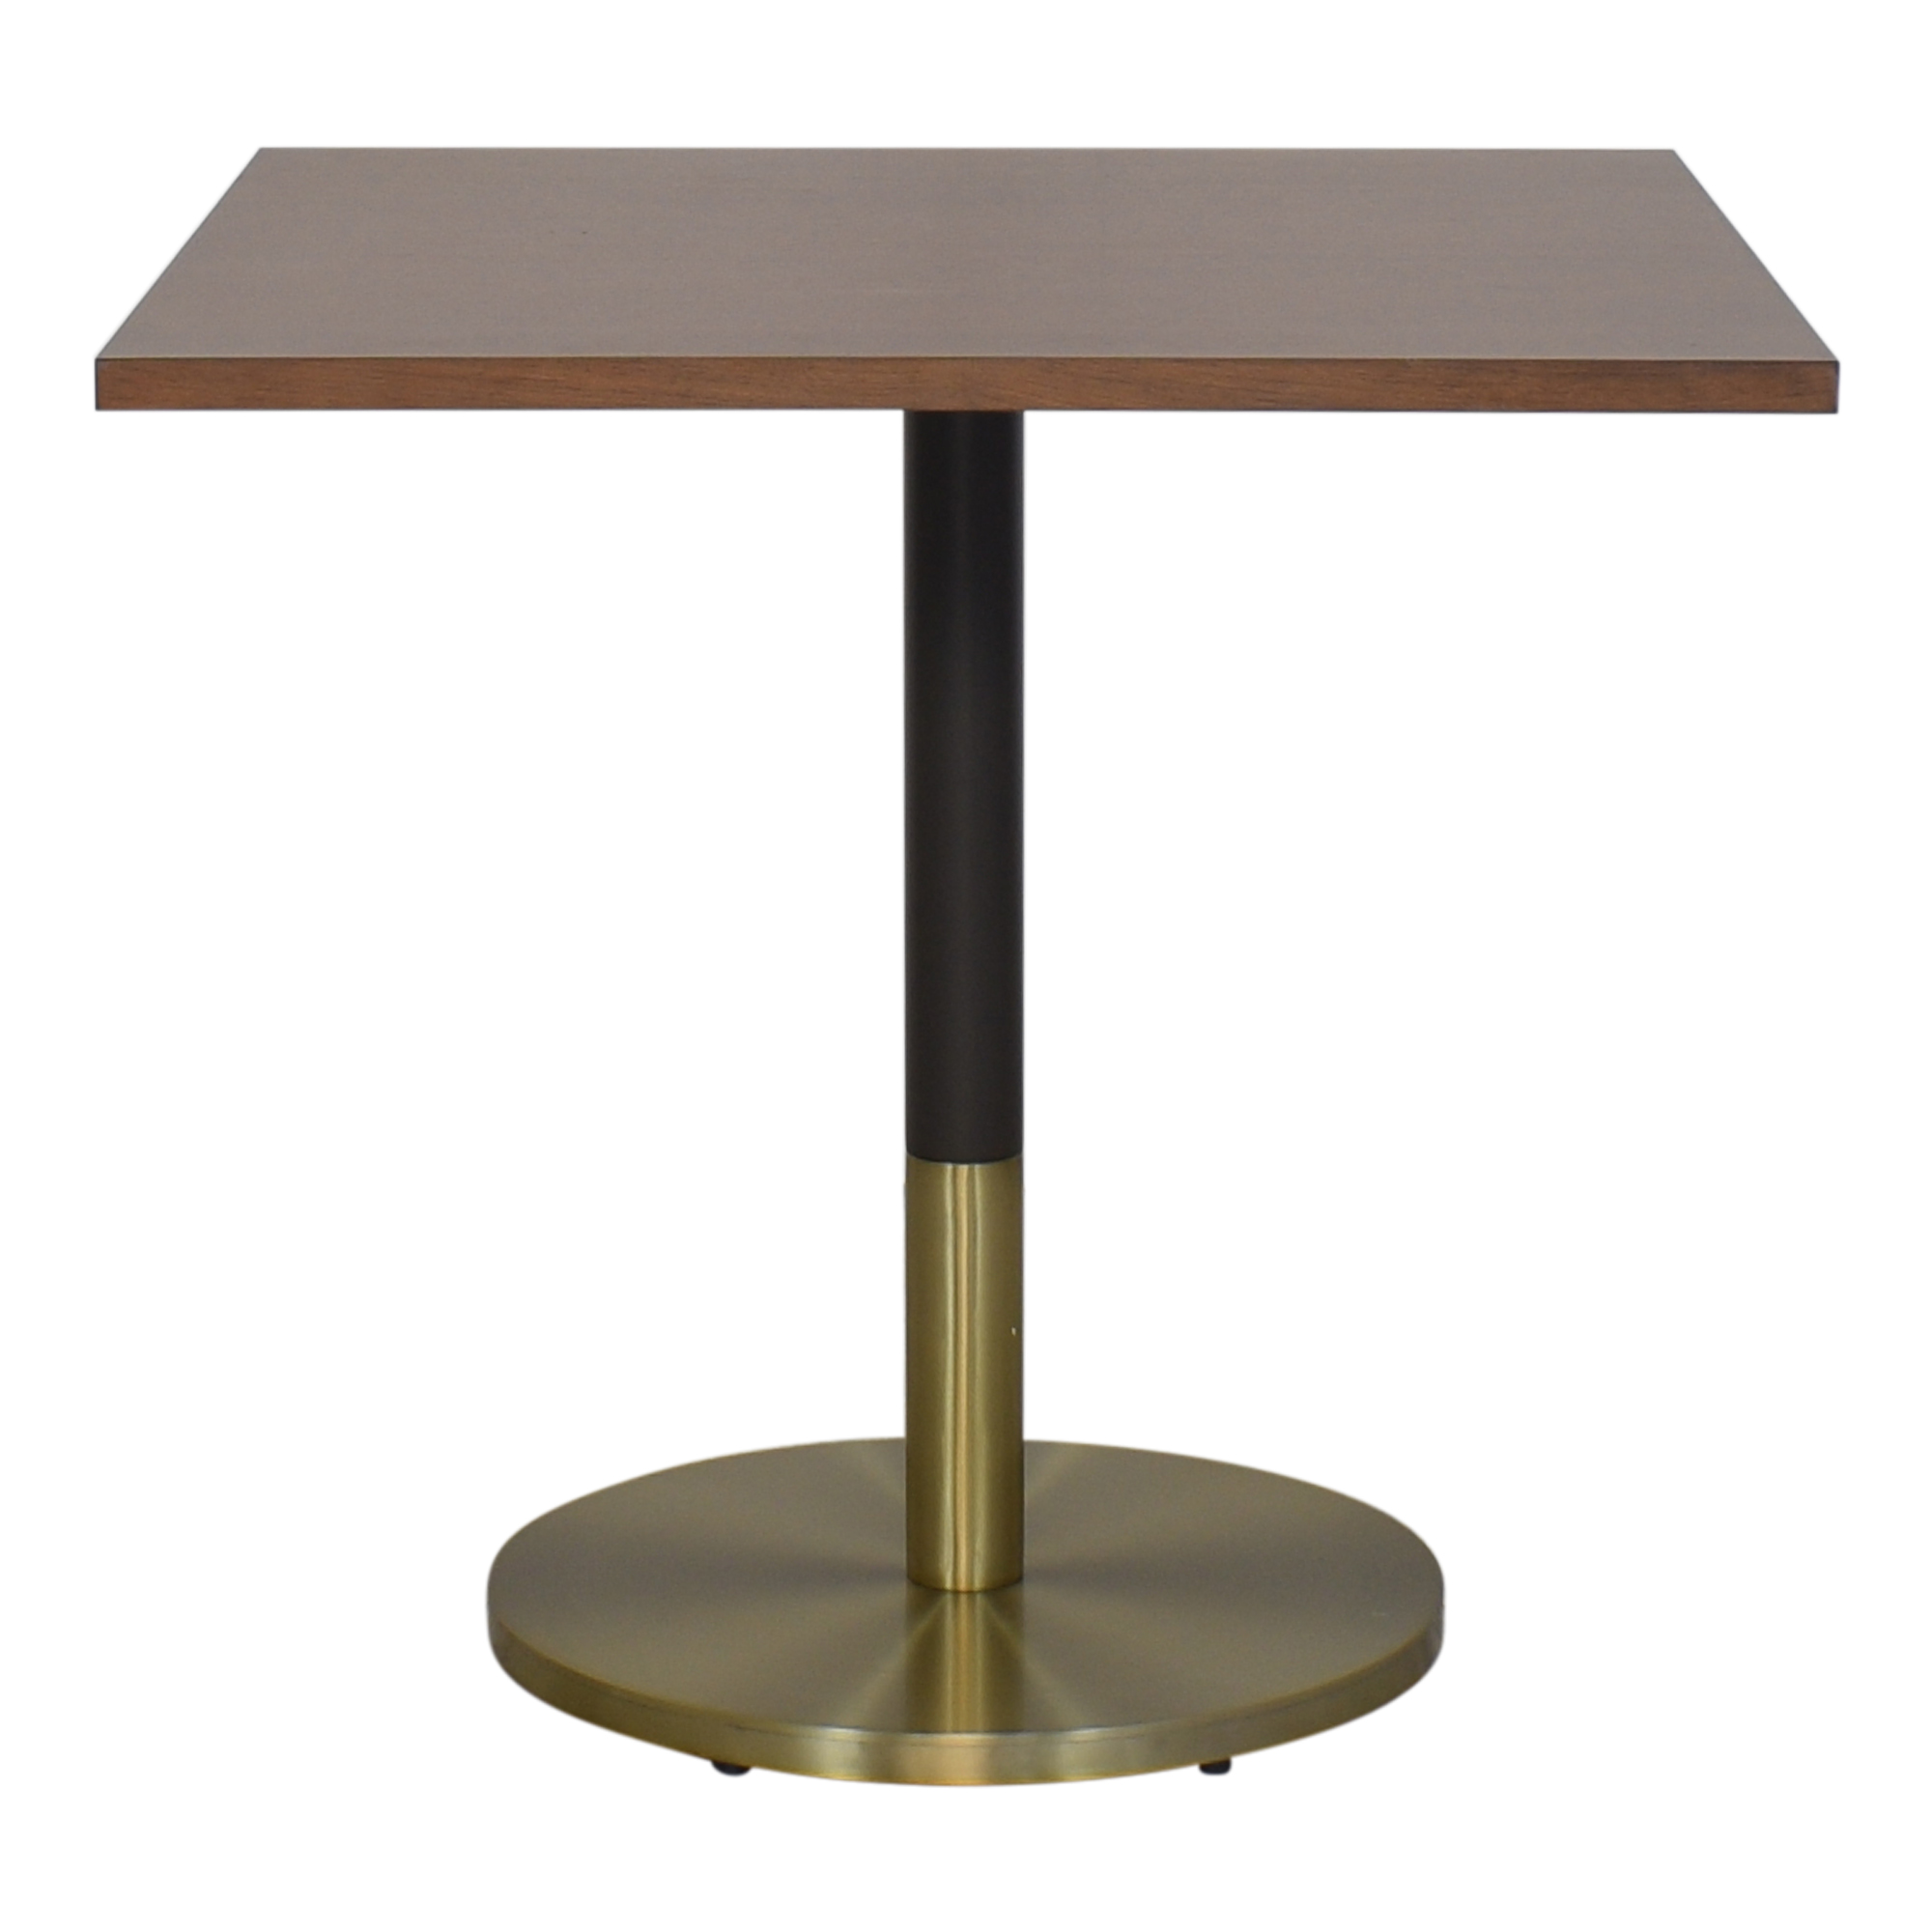 buy West Elm West Elm Square Bistro Table online